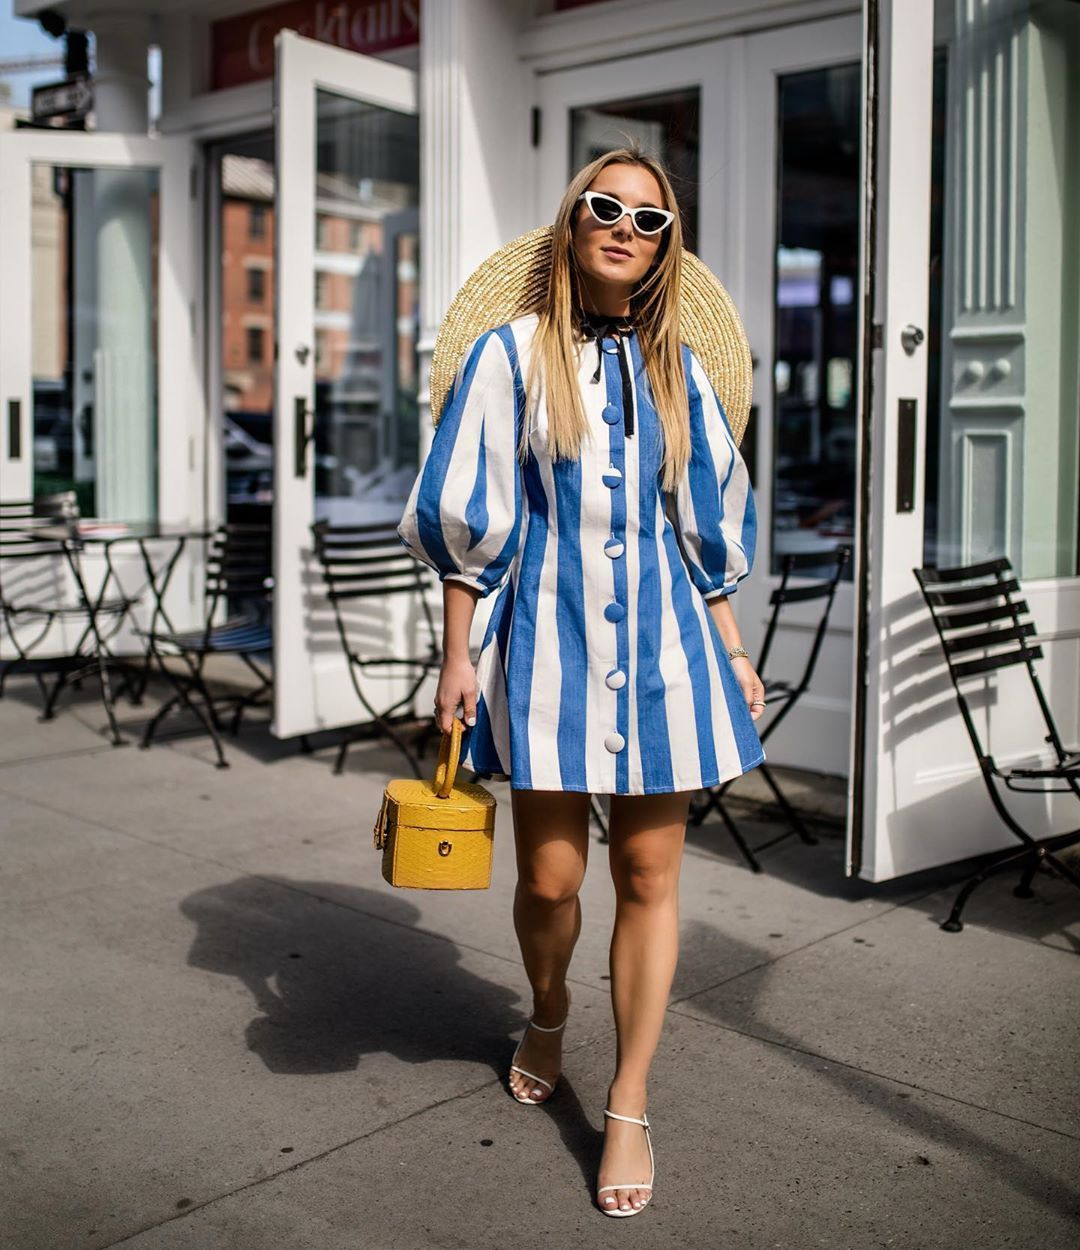 Stripe Dress Outfit Ideas Summer Big Sleeves Dress Summer Chic Summer Dress Ideas Wide Brim Chic Summer Dresses Hamptons Summer Fashion Outfits With Hats [ 1250 x 1080 Pixel ]